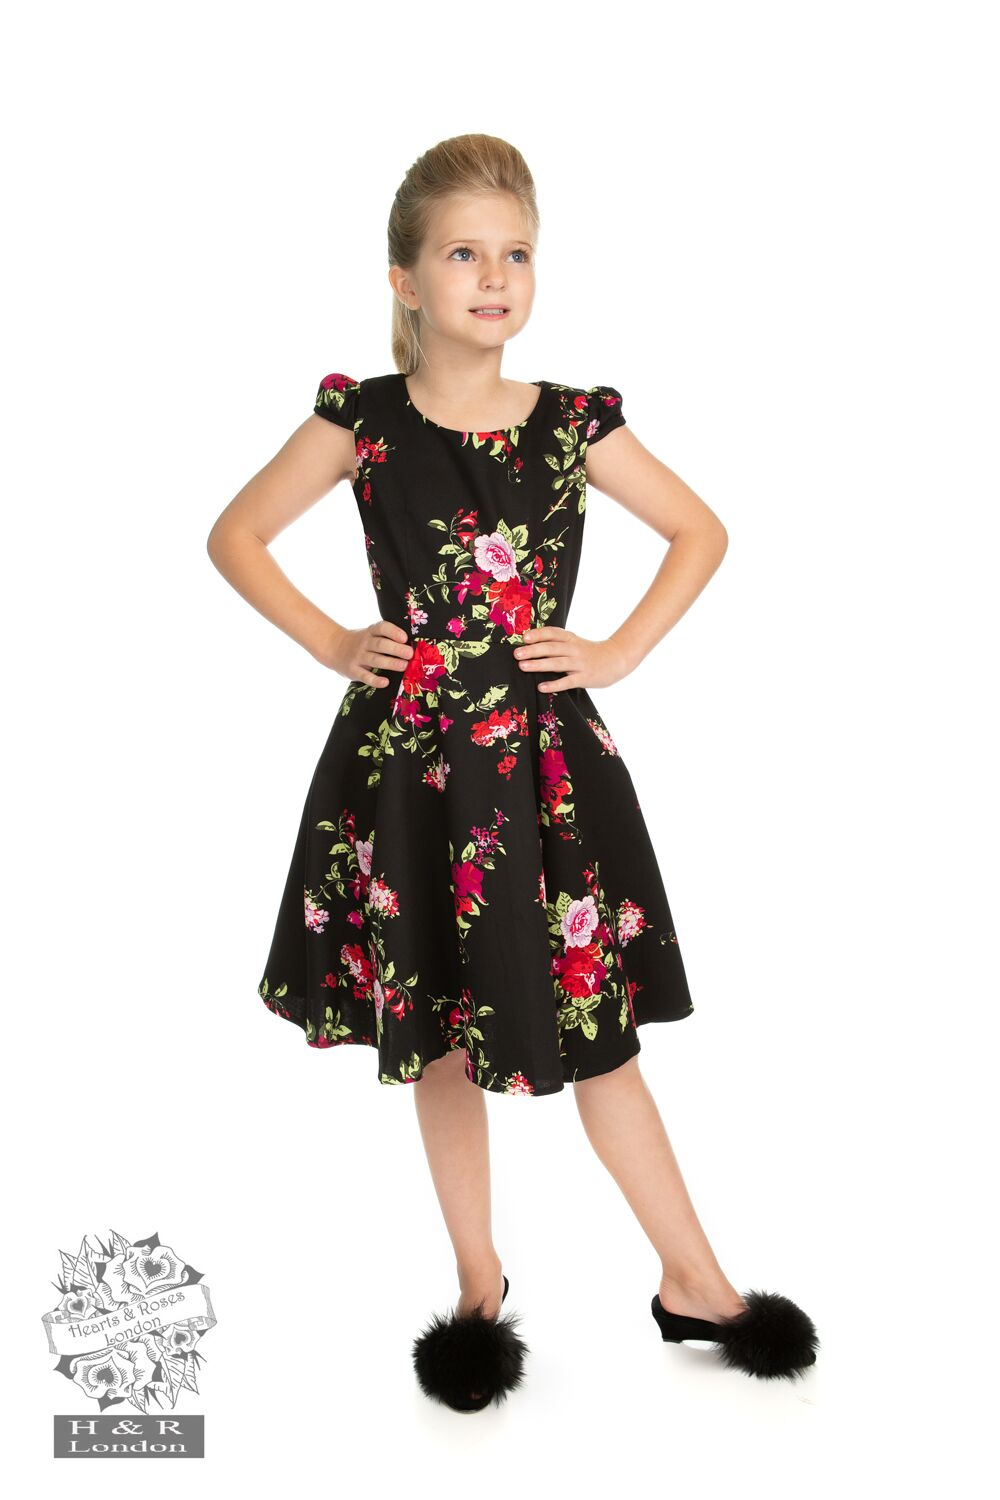 Girls Royal Ballet Tea Dress in Black